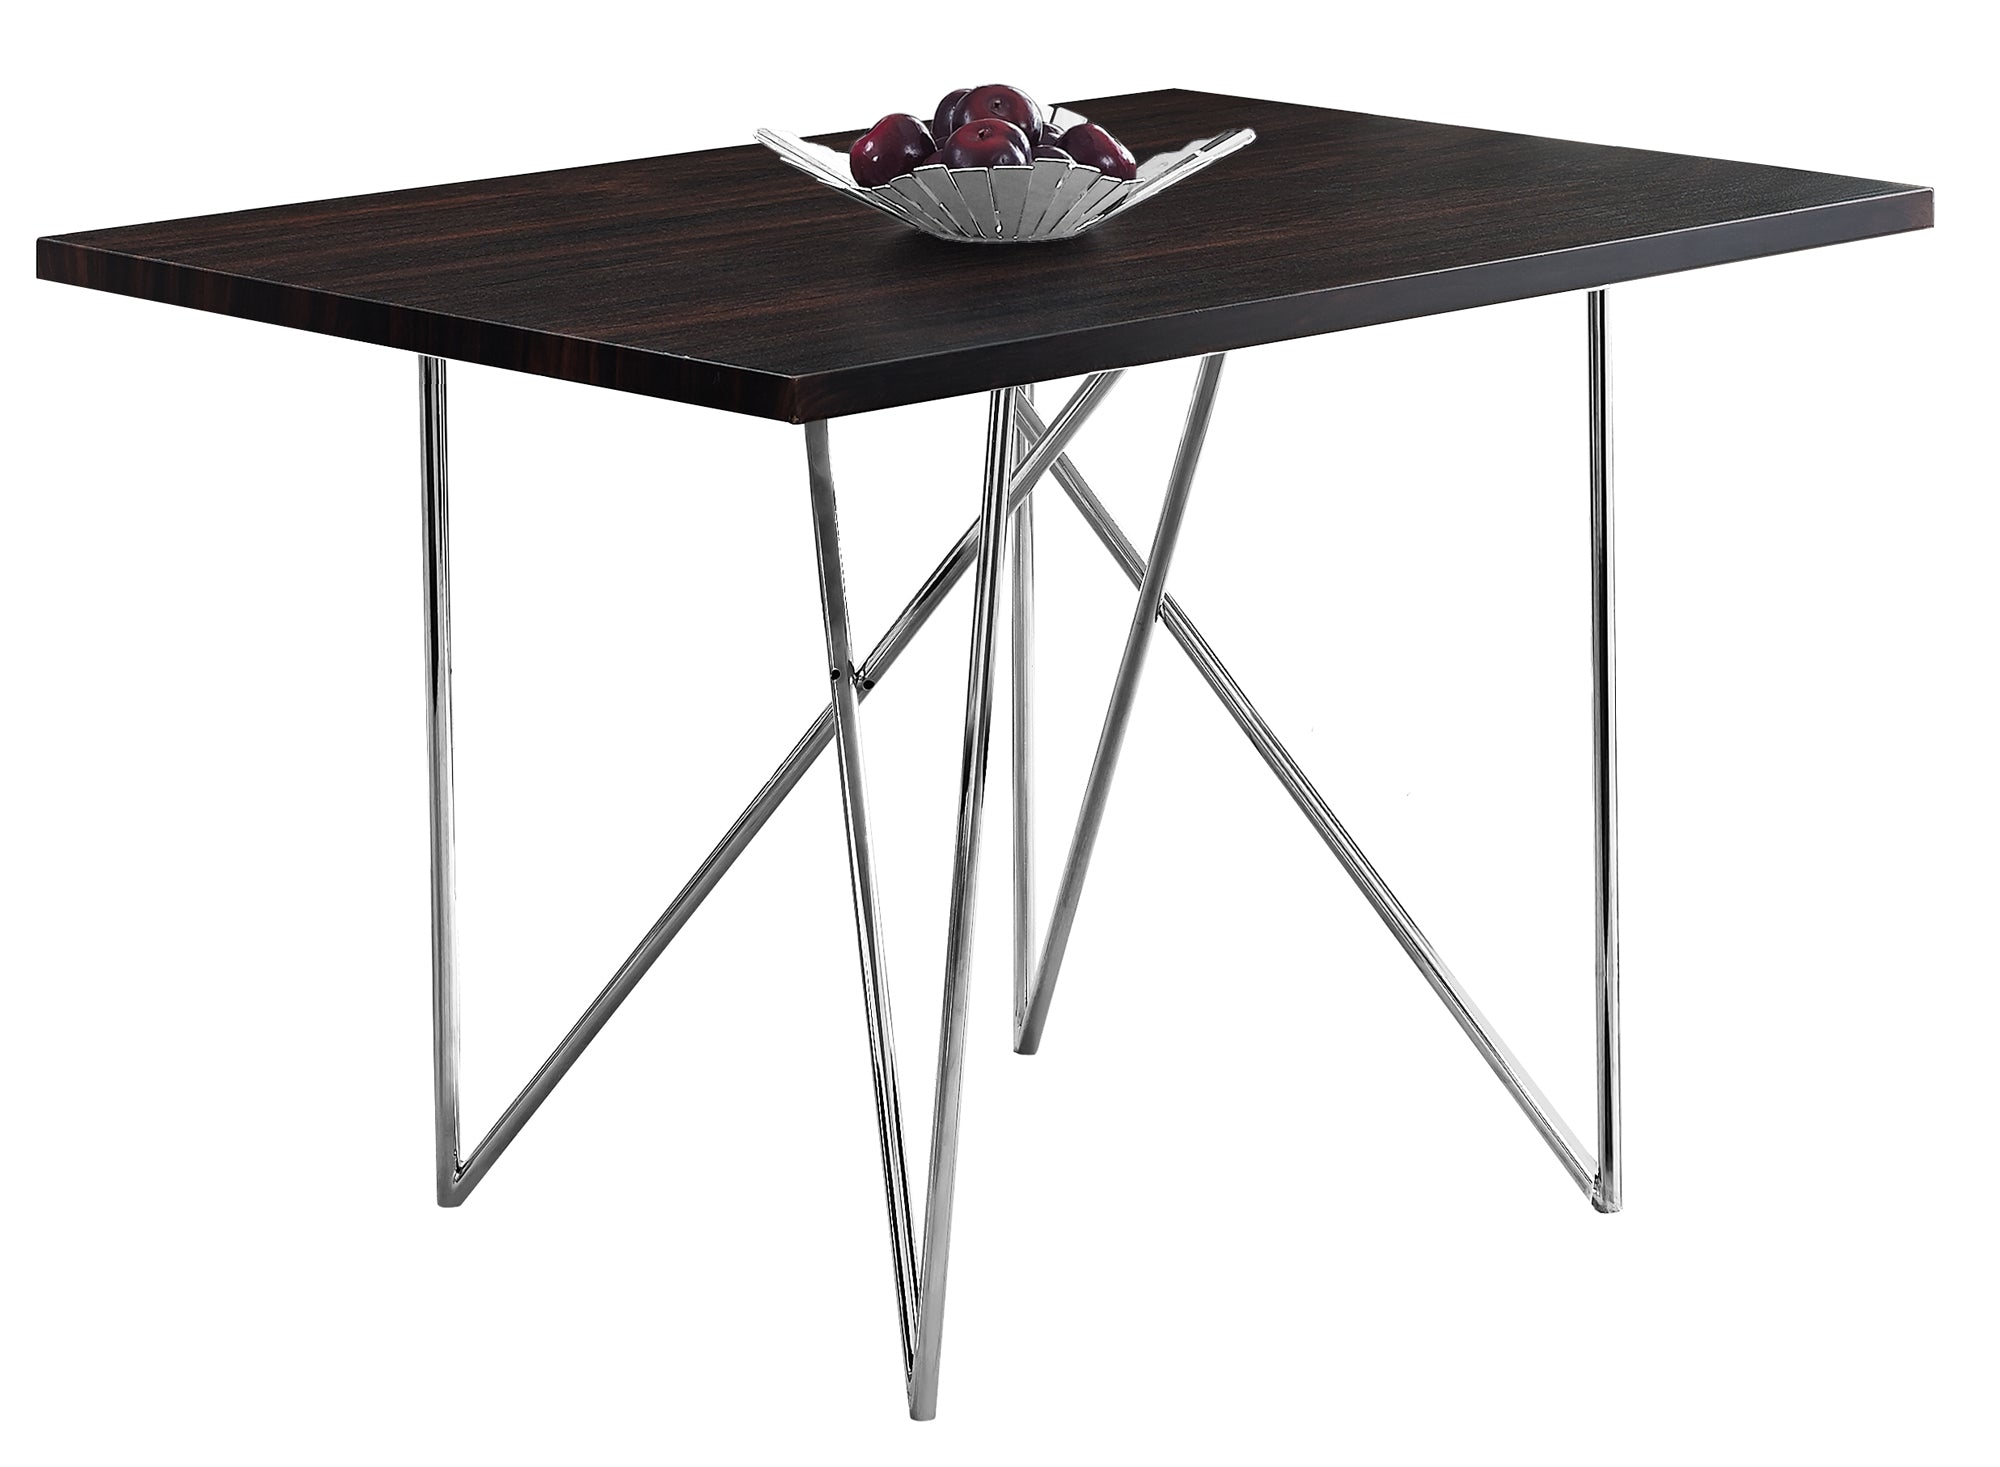 Buy Monarch Specialties I 1039 Dining Table 32 X 48 Cappuccino Chrome Metal At Contemporary Furniture Warehouse